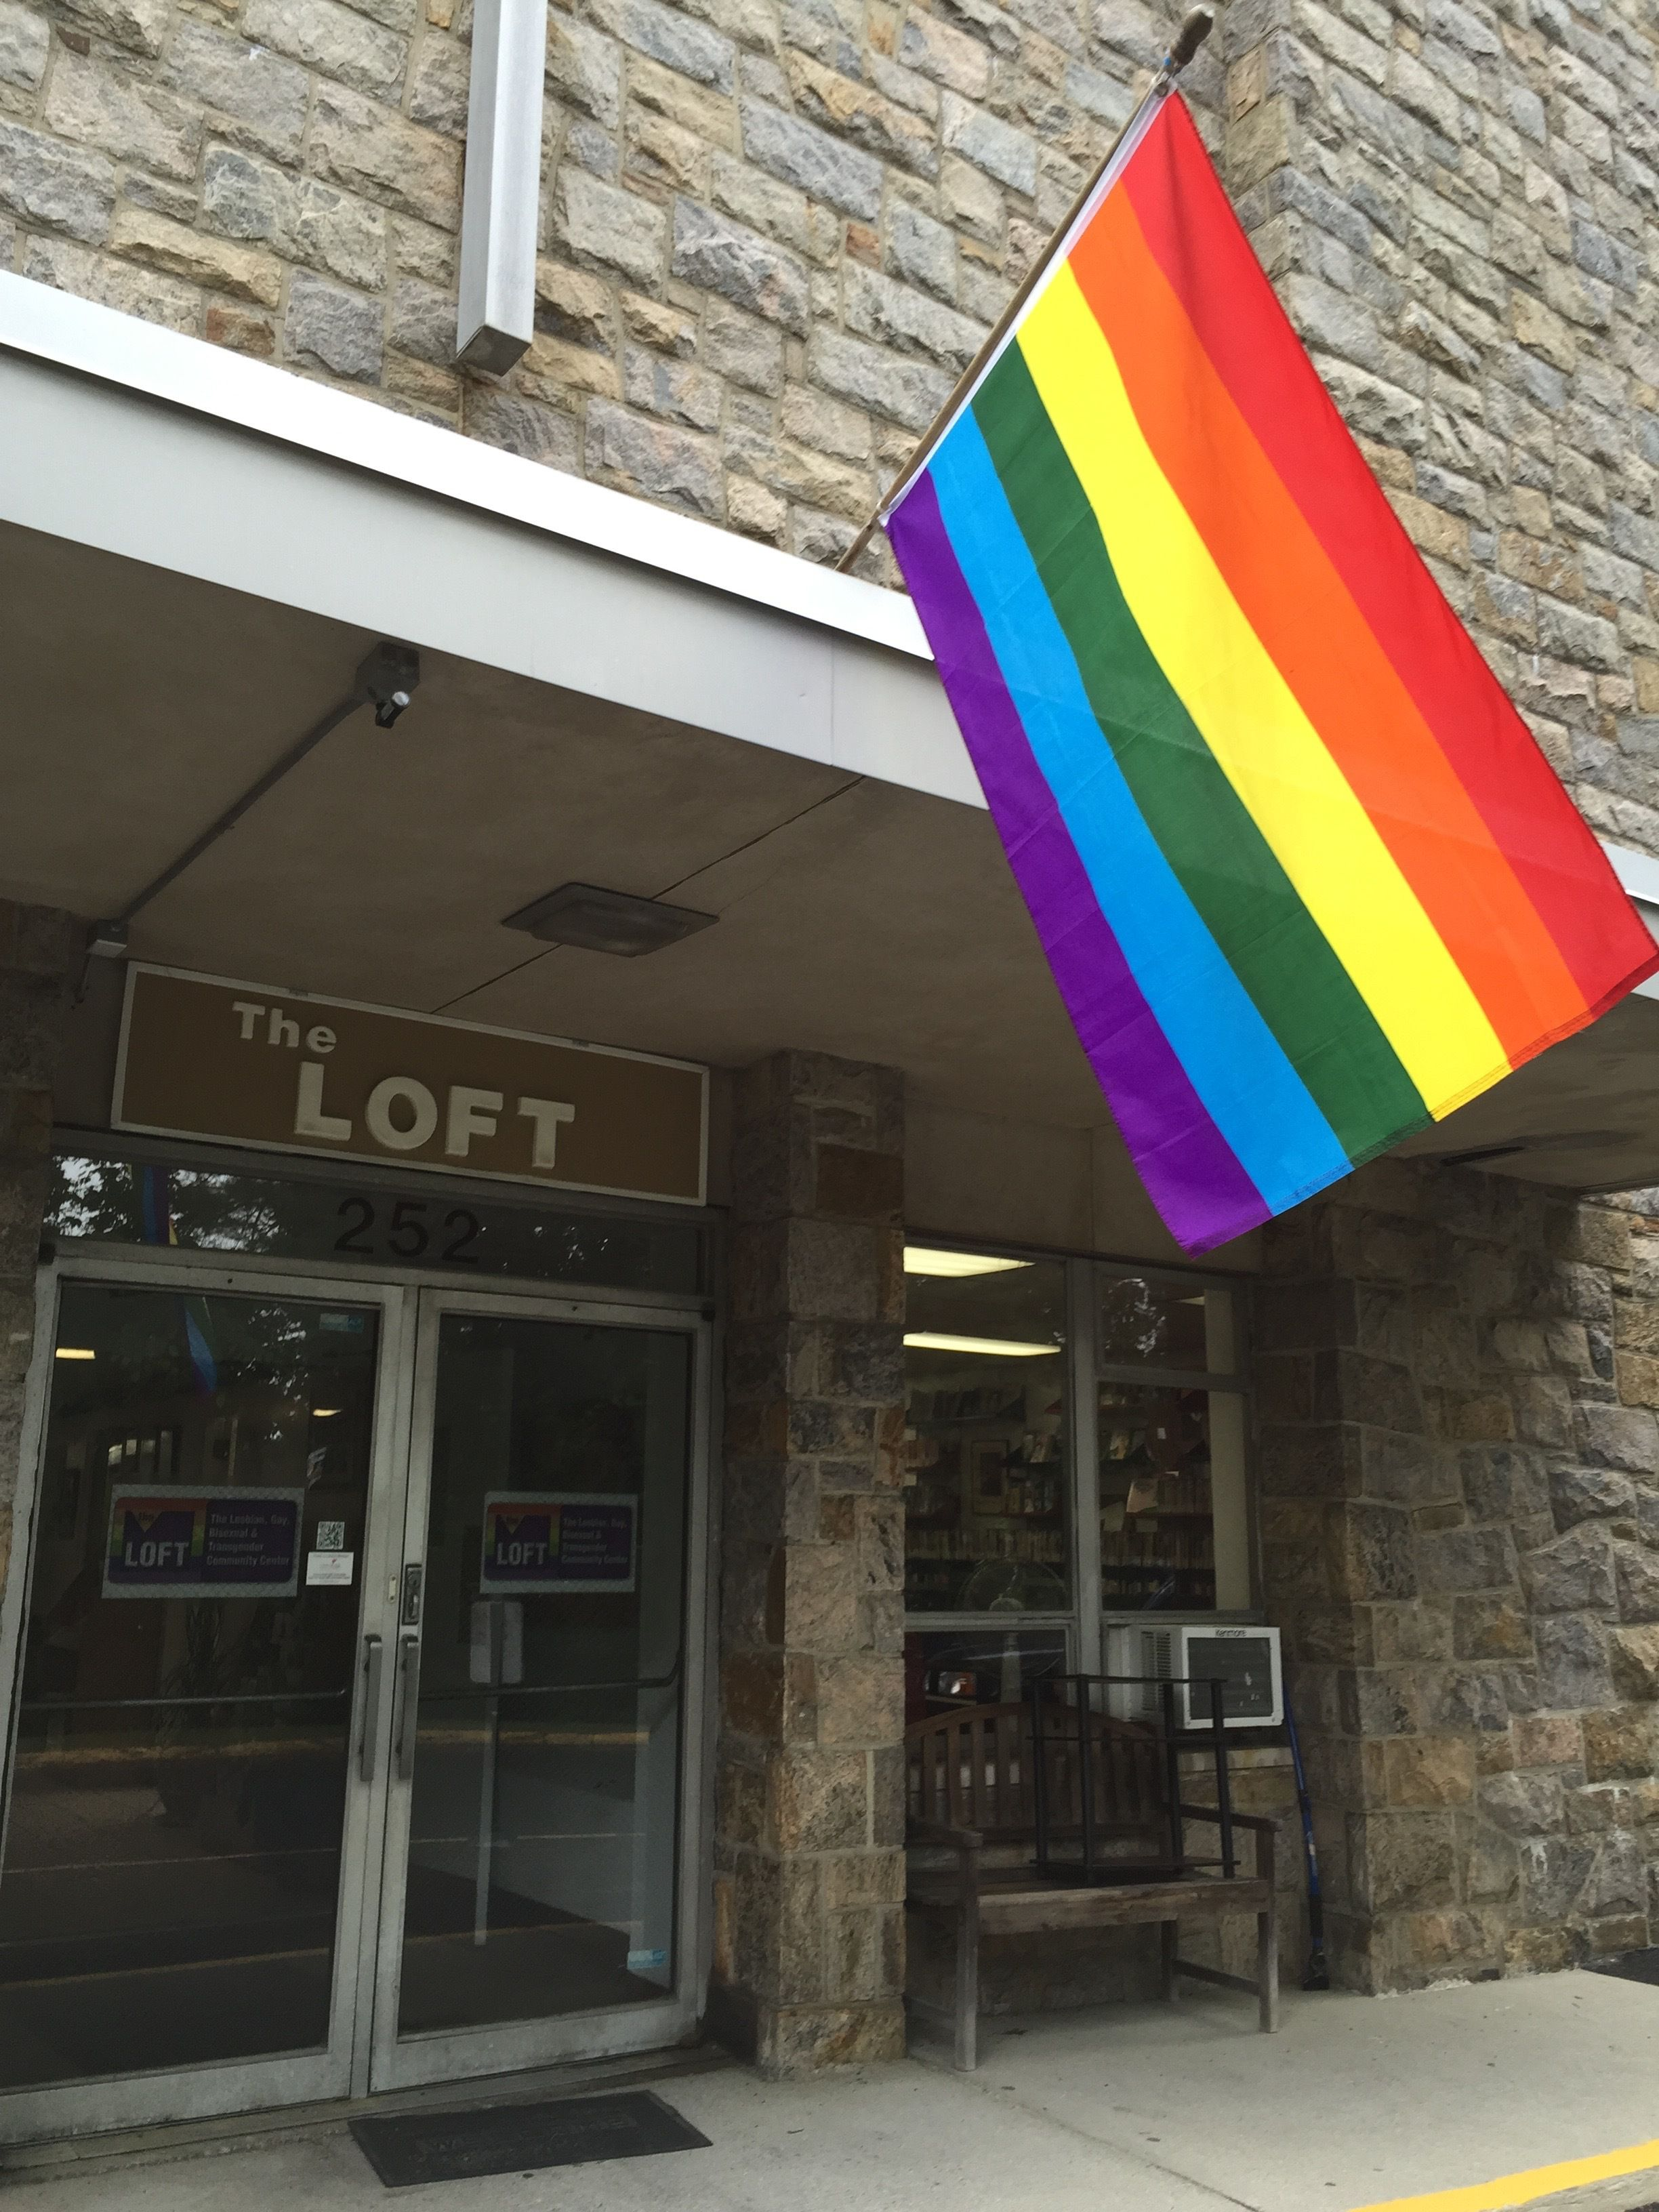 The LOFT: LGBT Community Services Center